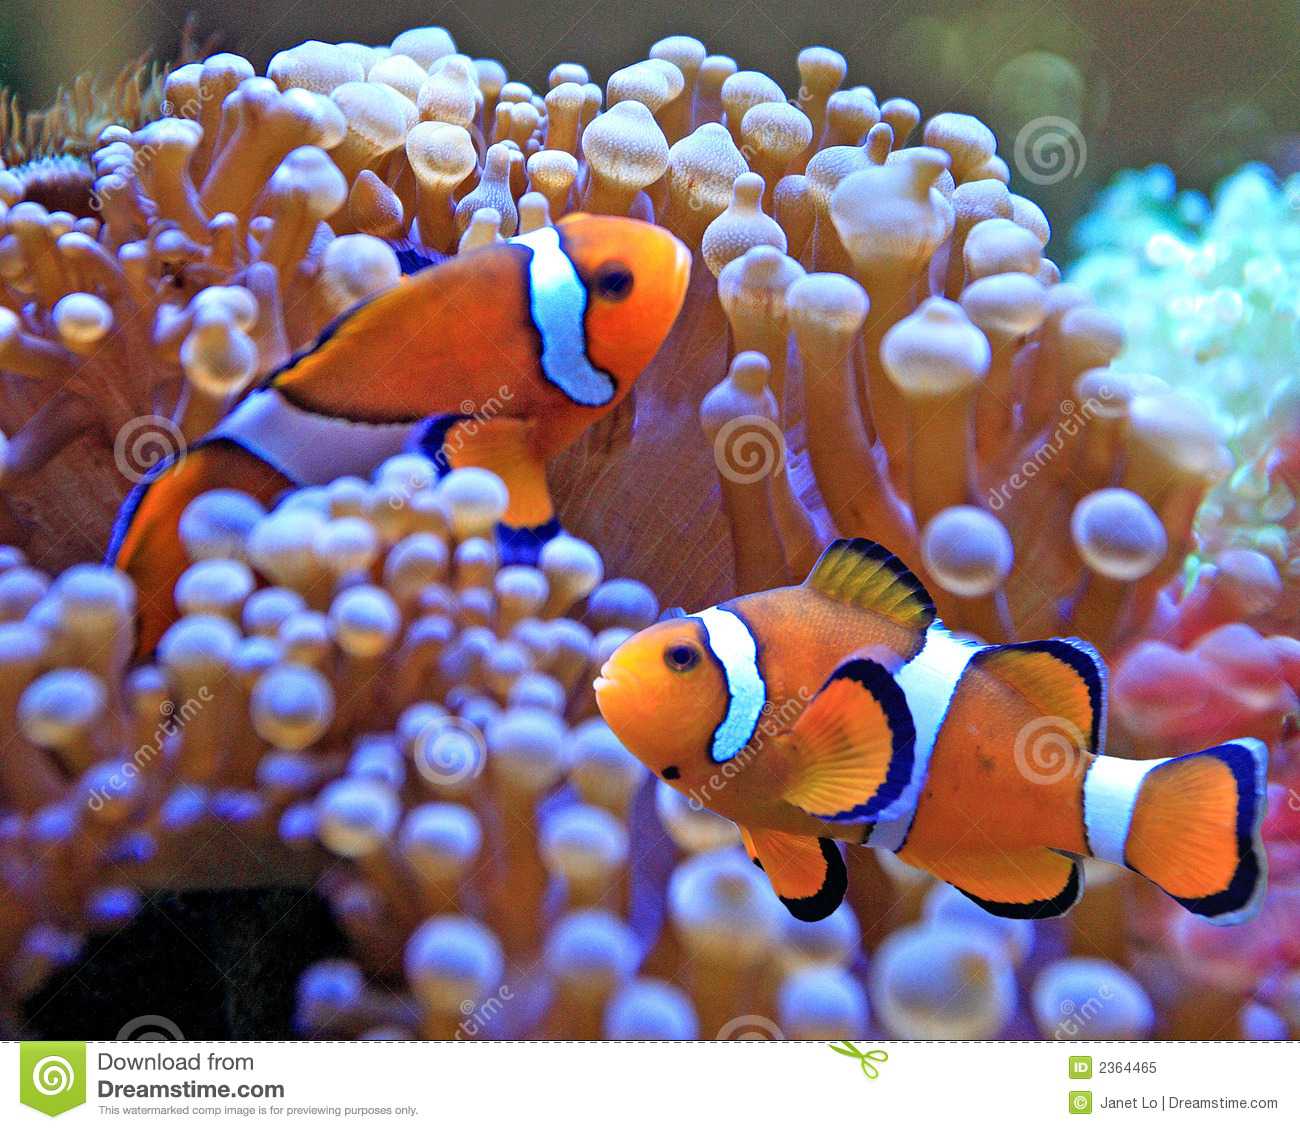 Clown fish royalty free stock photo image 2364465 for Clown fish for sale